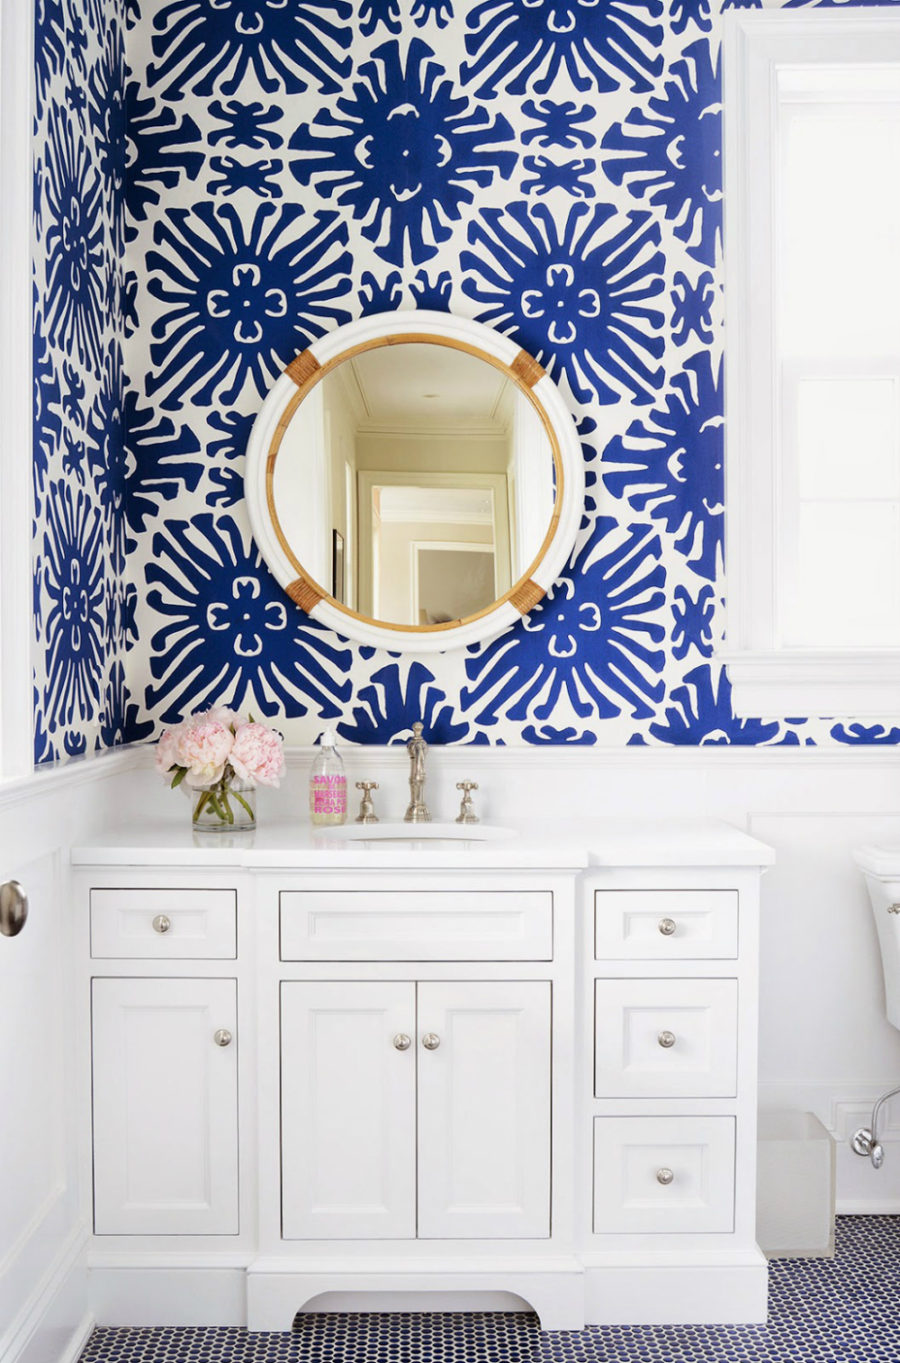 Patterner powder room